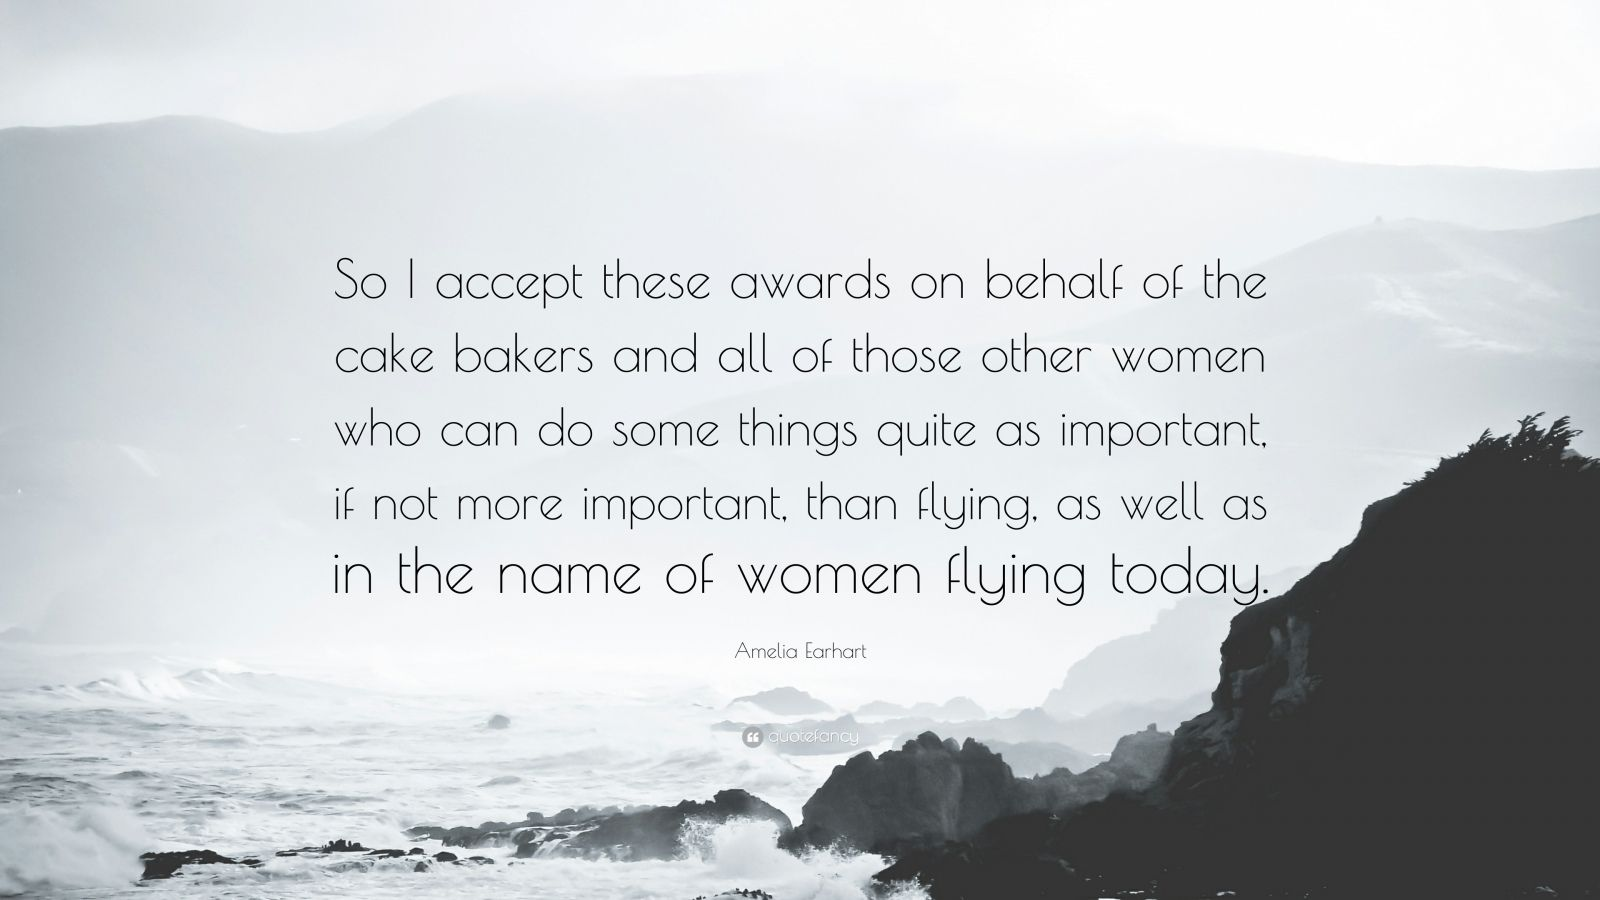 "Amelia Earhart Quote: ""So I accept these awards on behalf of the cake bakers and all of those other women who can do some things quite as important, if not more important, than flying, as well as in the name of women flying today."""